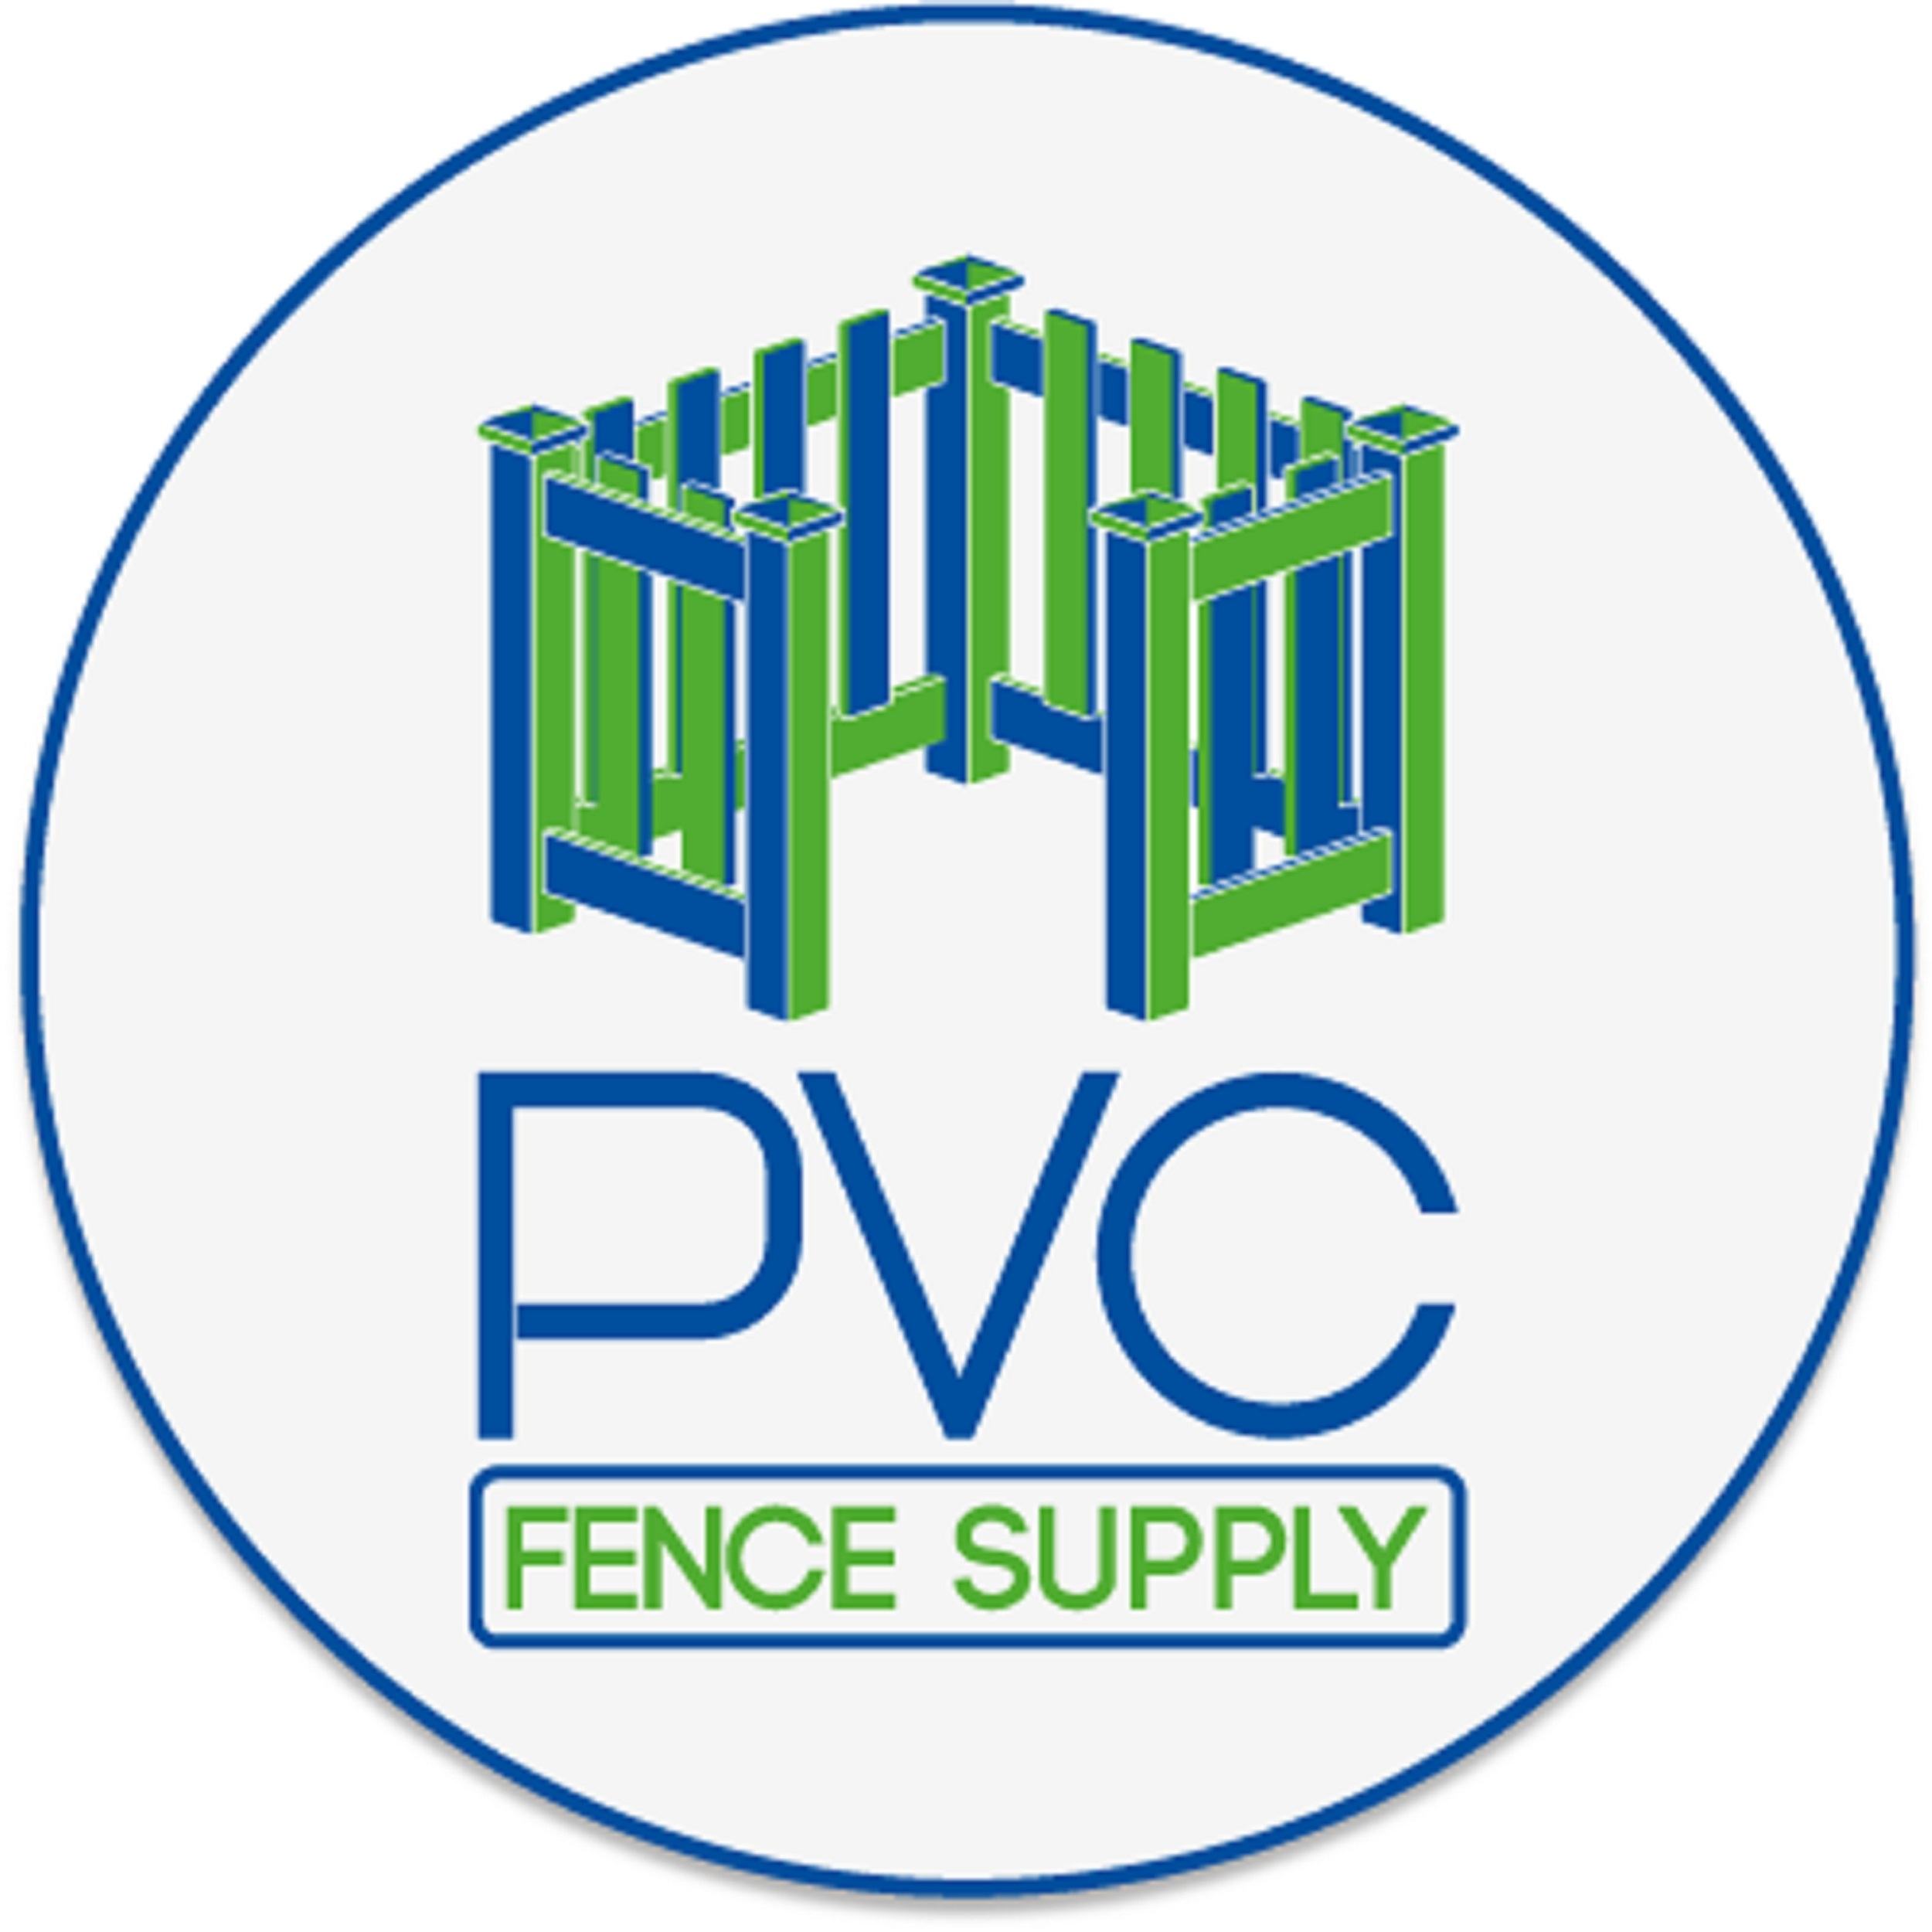 PVC Fence Supply